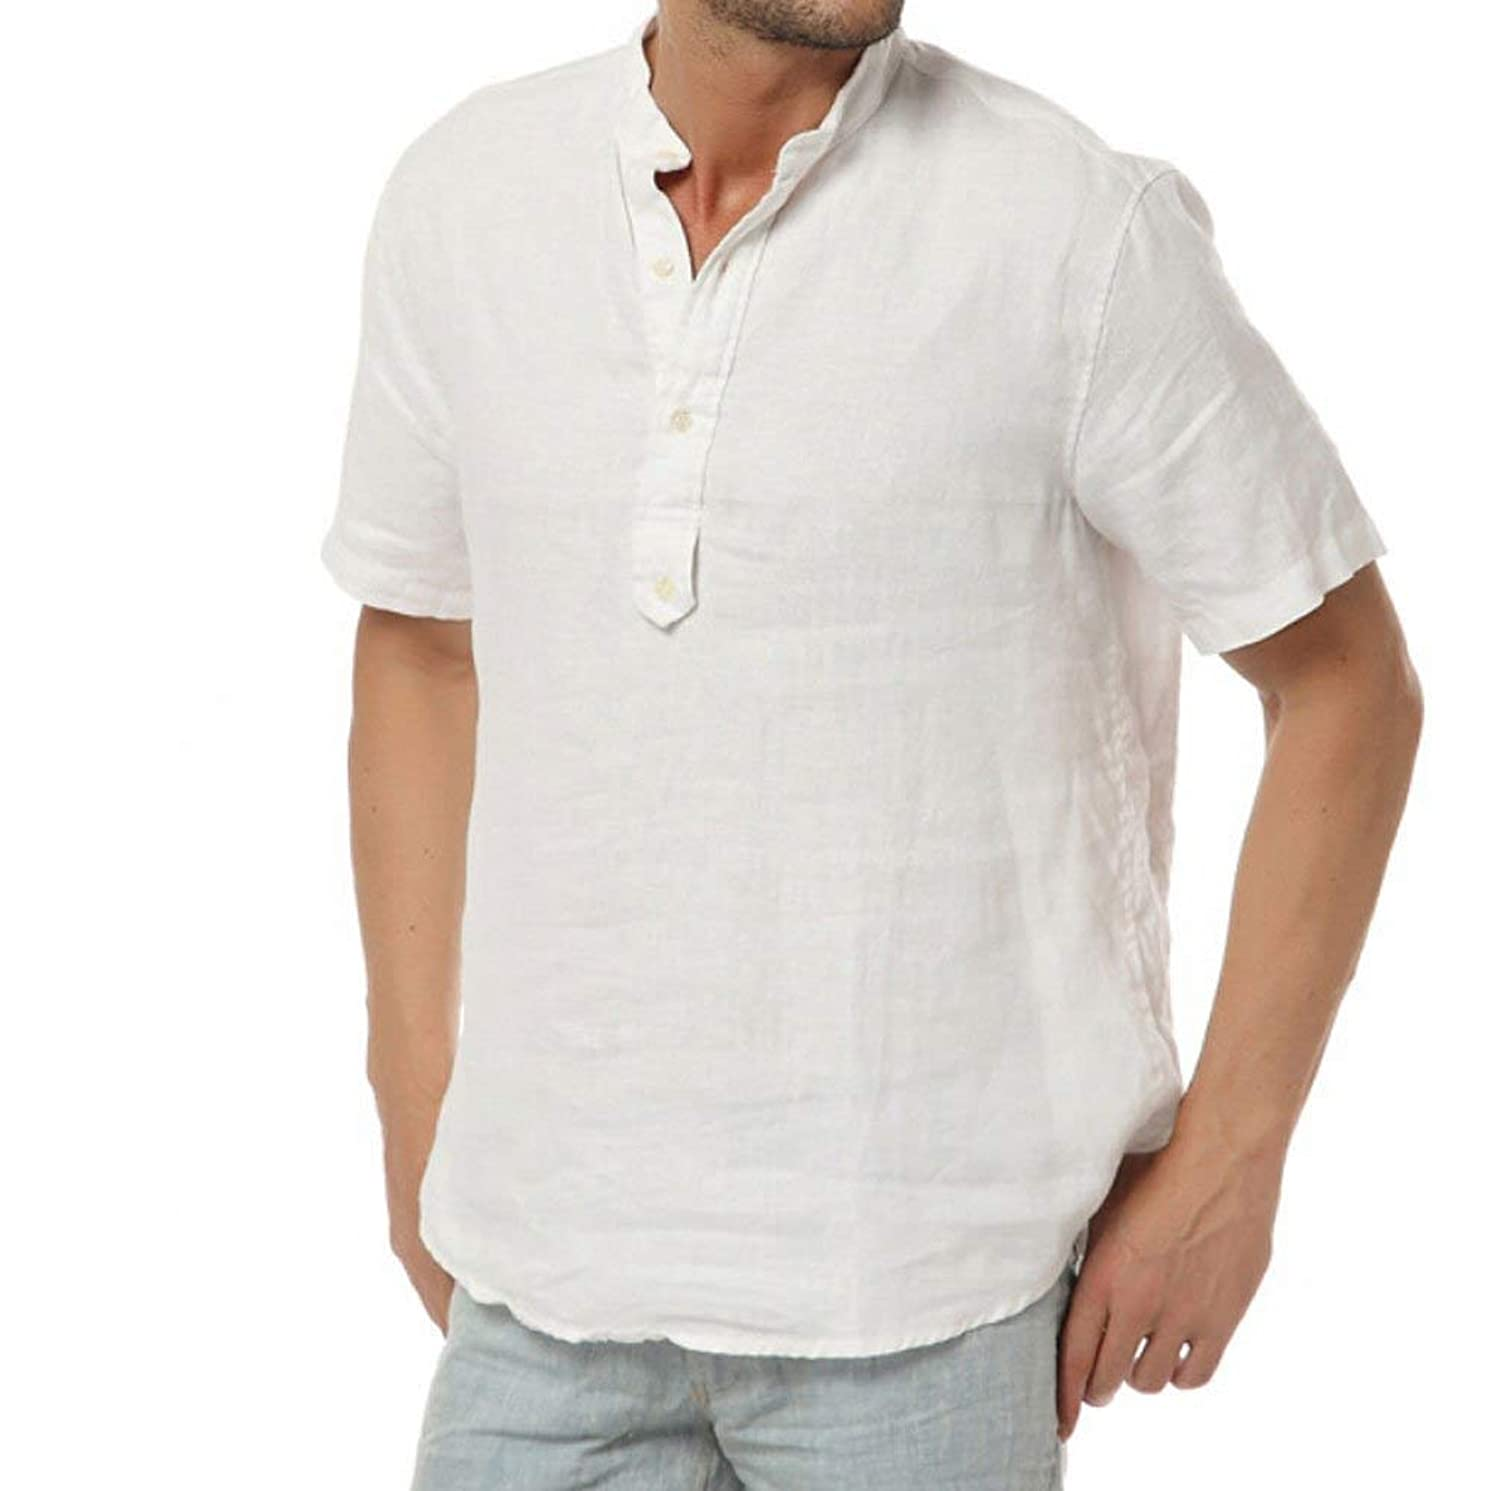 Beotyshow Mens Basic Short Sleeve Henley Shirts Cotton Linen Five-Button Fly Collarless Pullover Shirts for Men